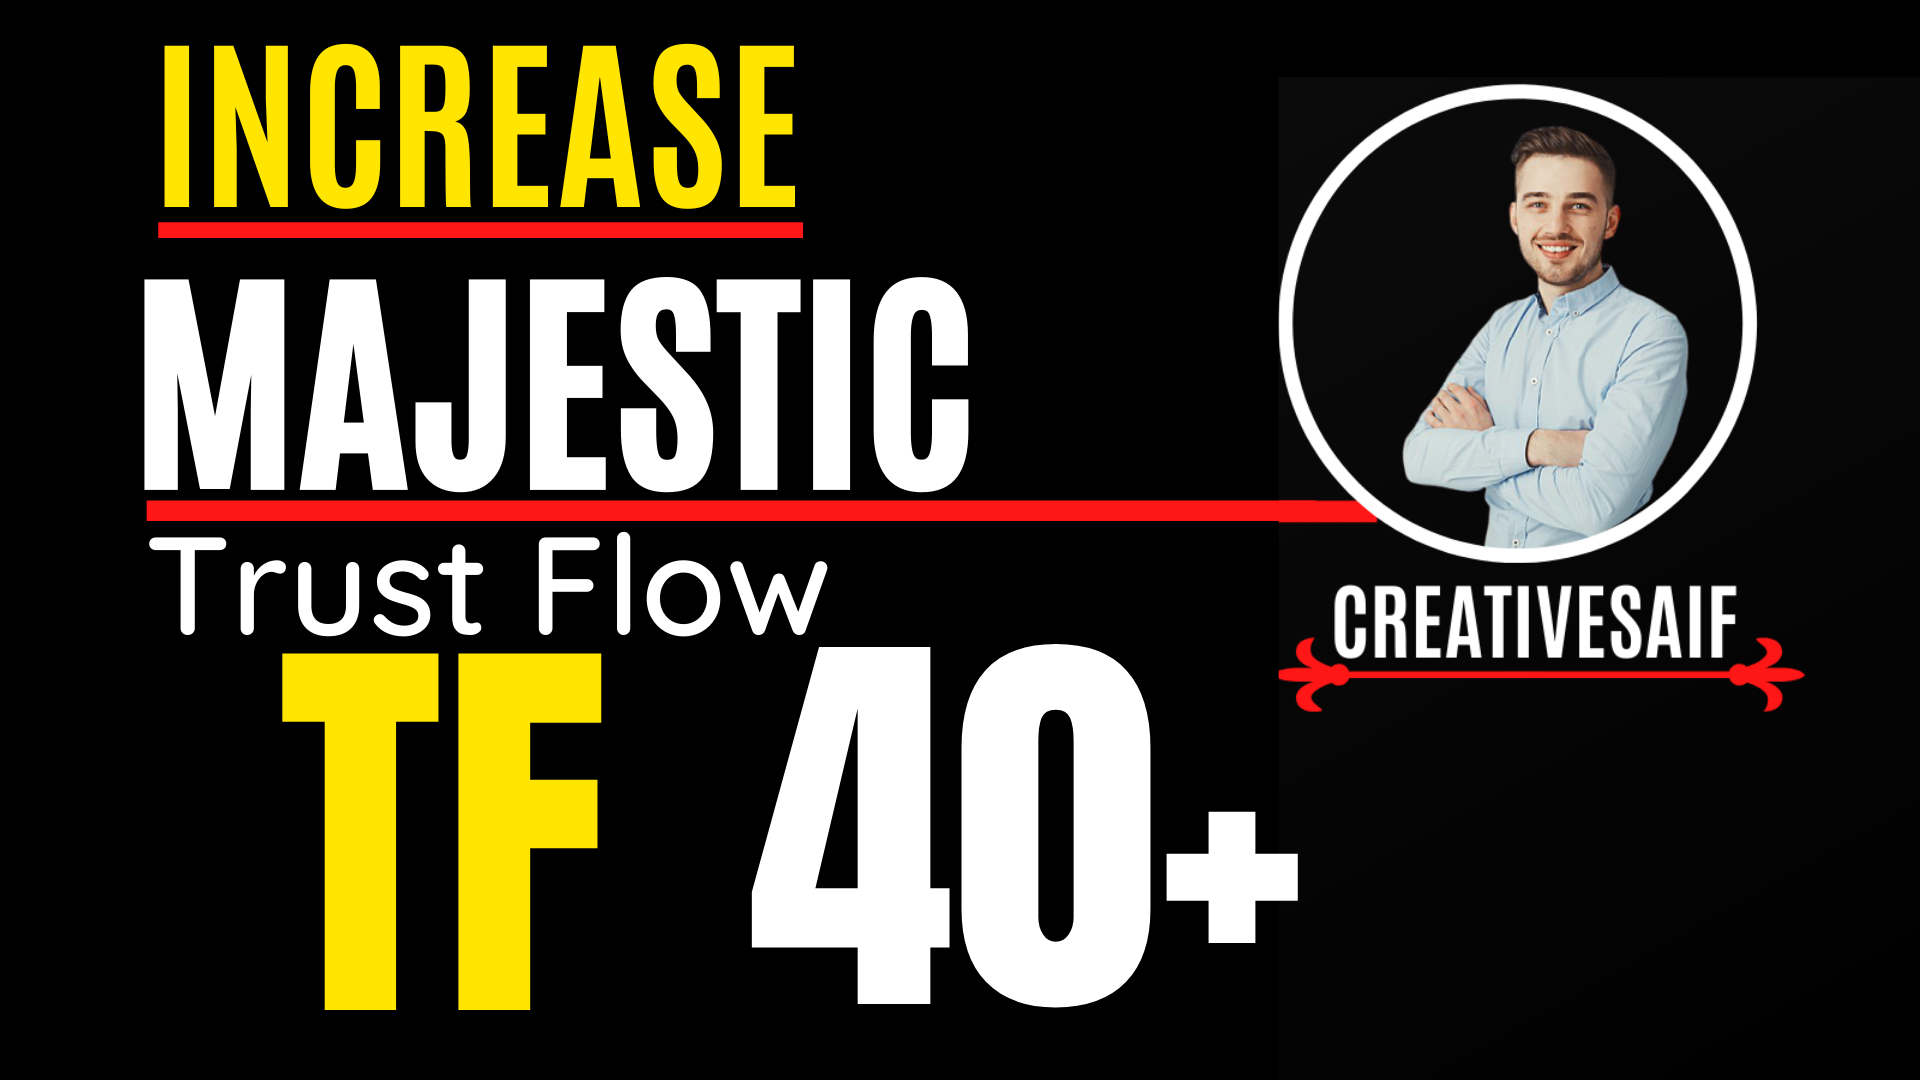 I will increase Majestic Trust Flow 40 plus with White hat SEO